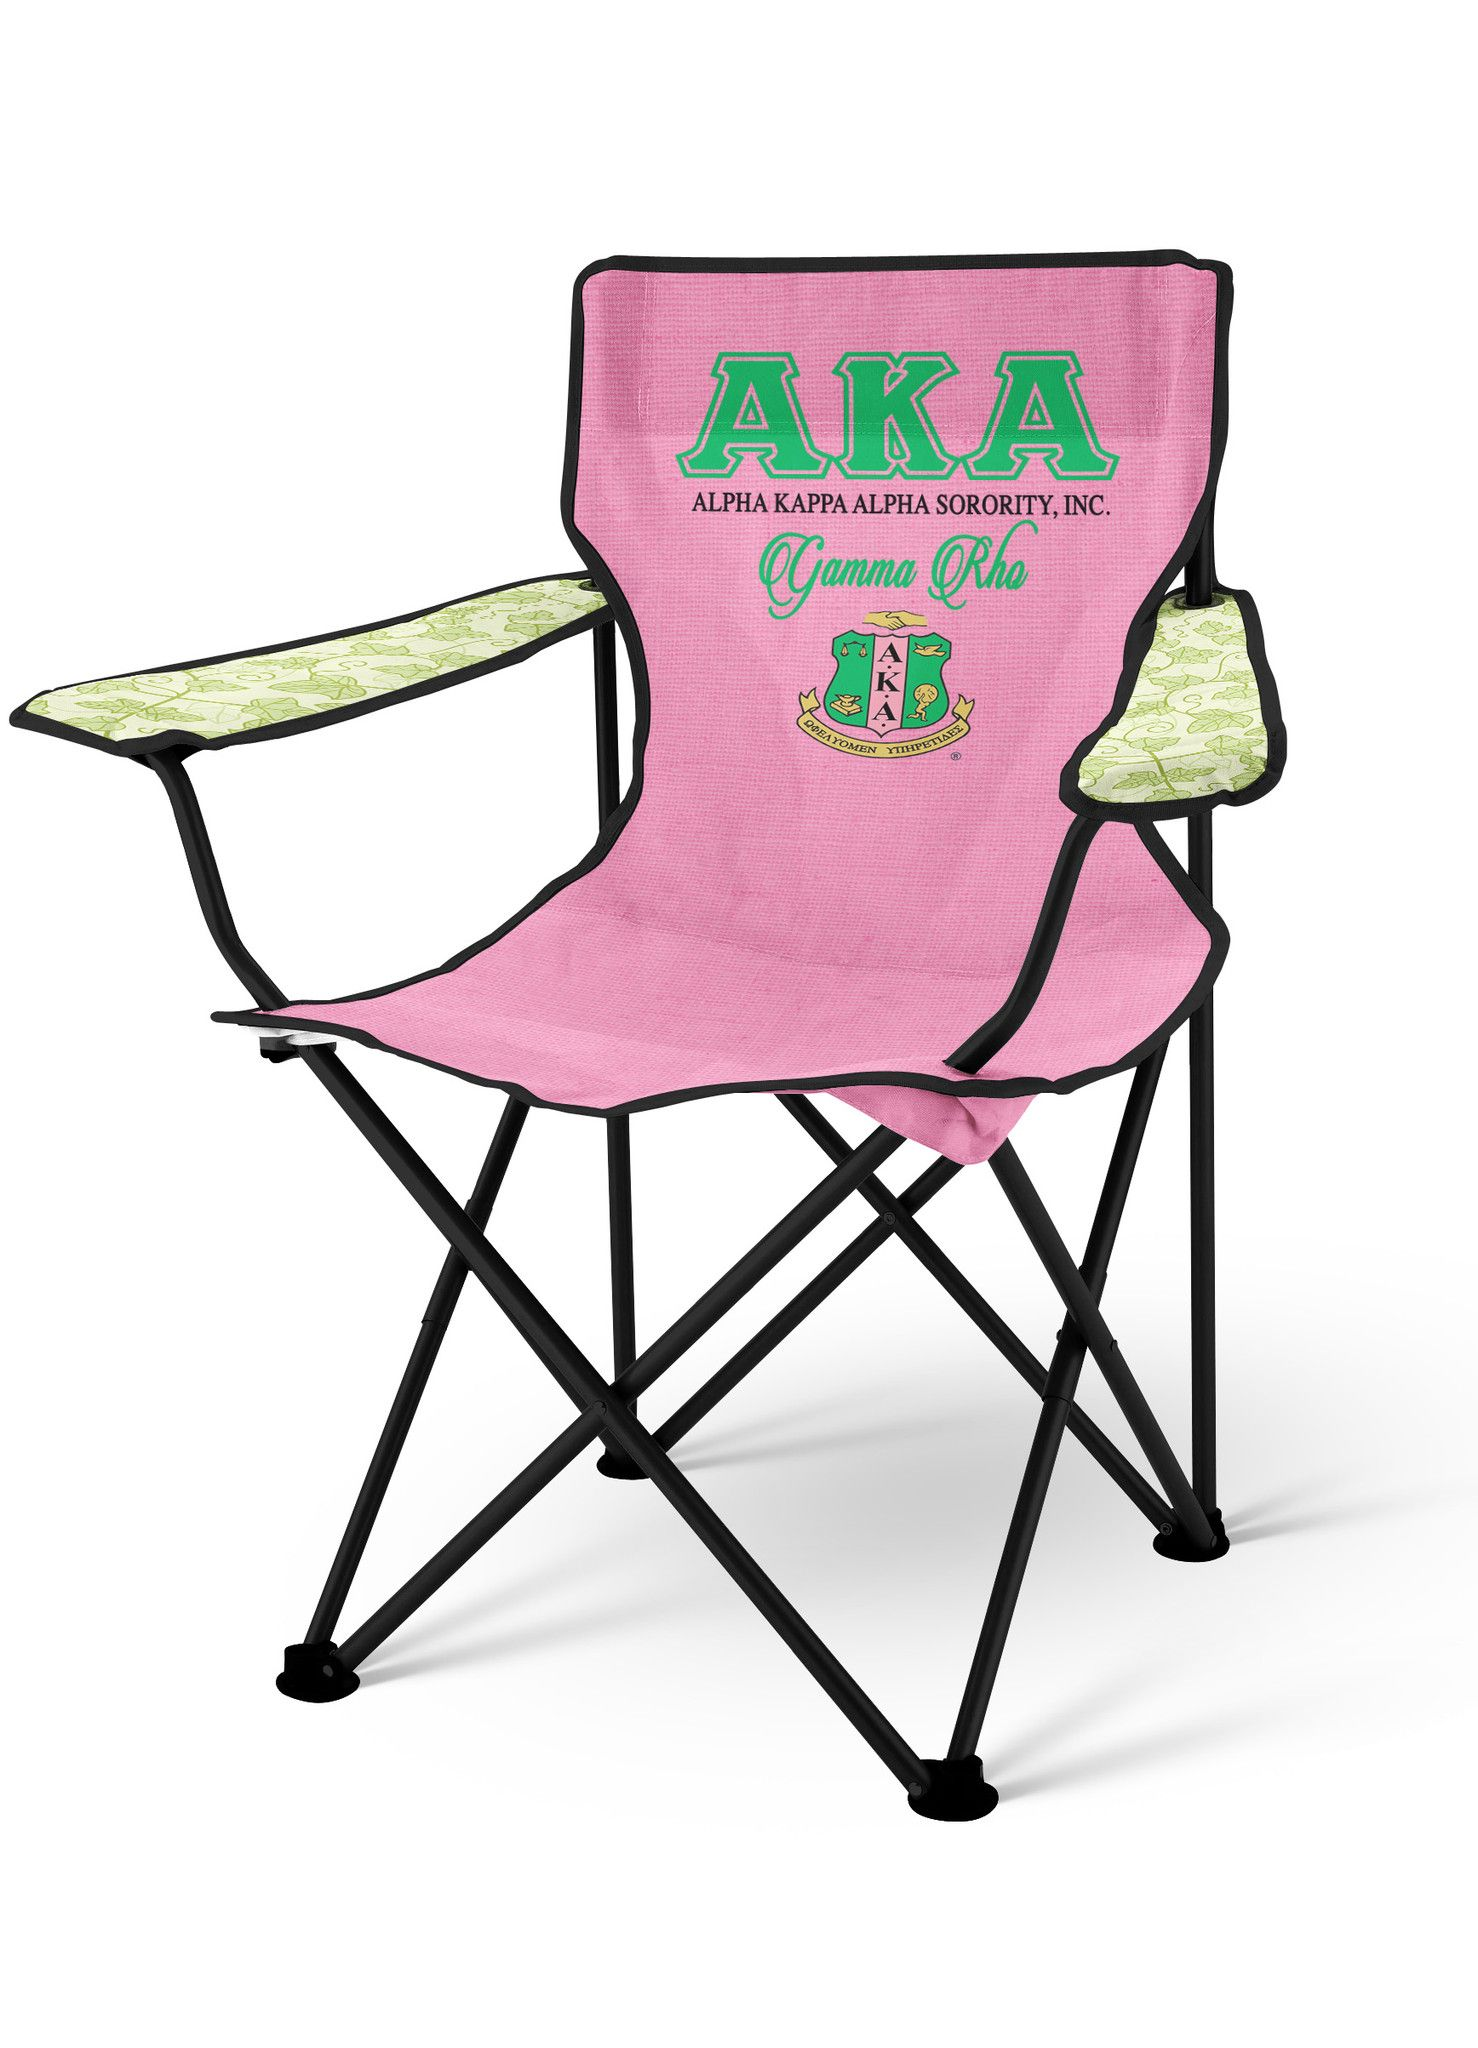 AKA Lawn Chair, Alpha Kappa Alpha Folding Chair   Designs By Deeu0027s Hands   1